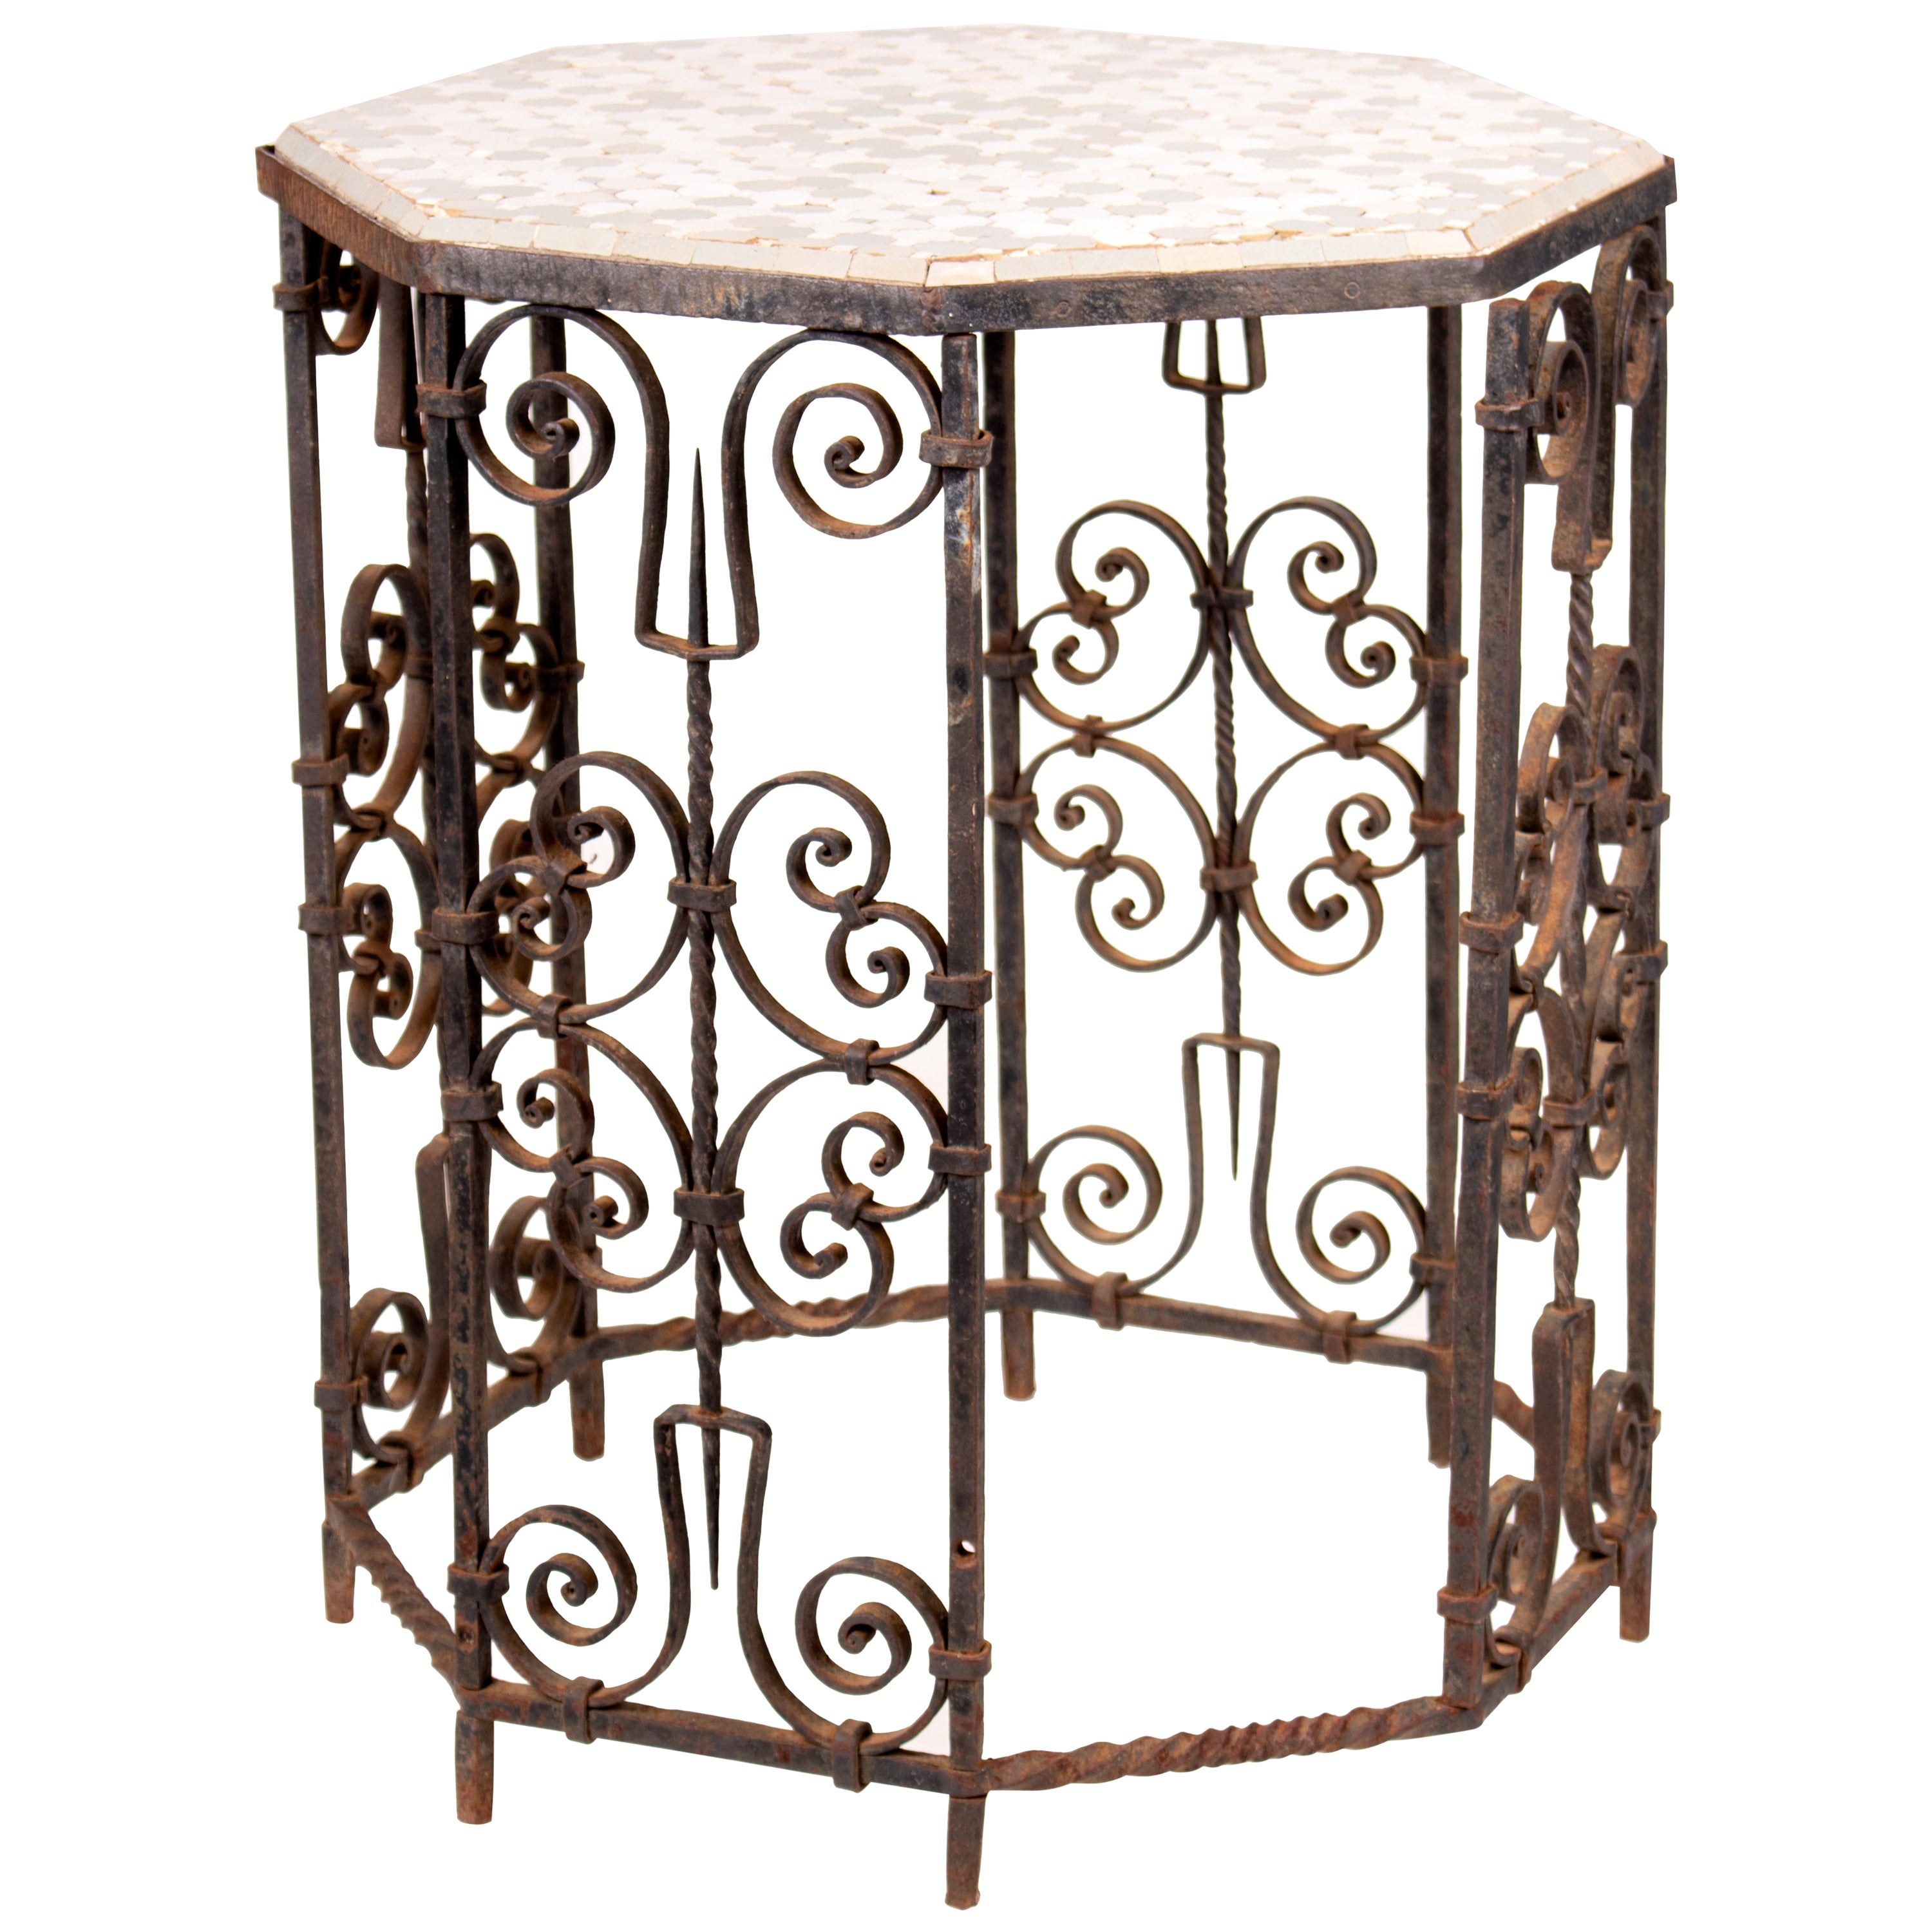 19th Century French Wrought Iron Octagonal Ceramic Top Table